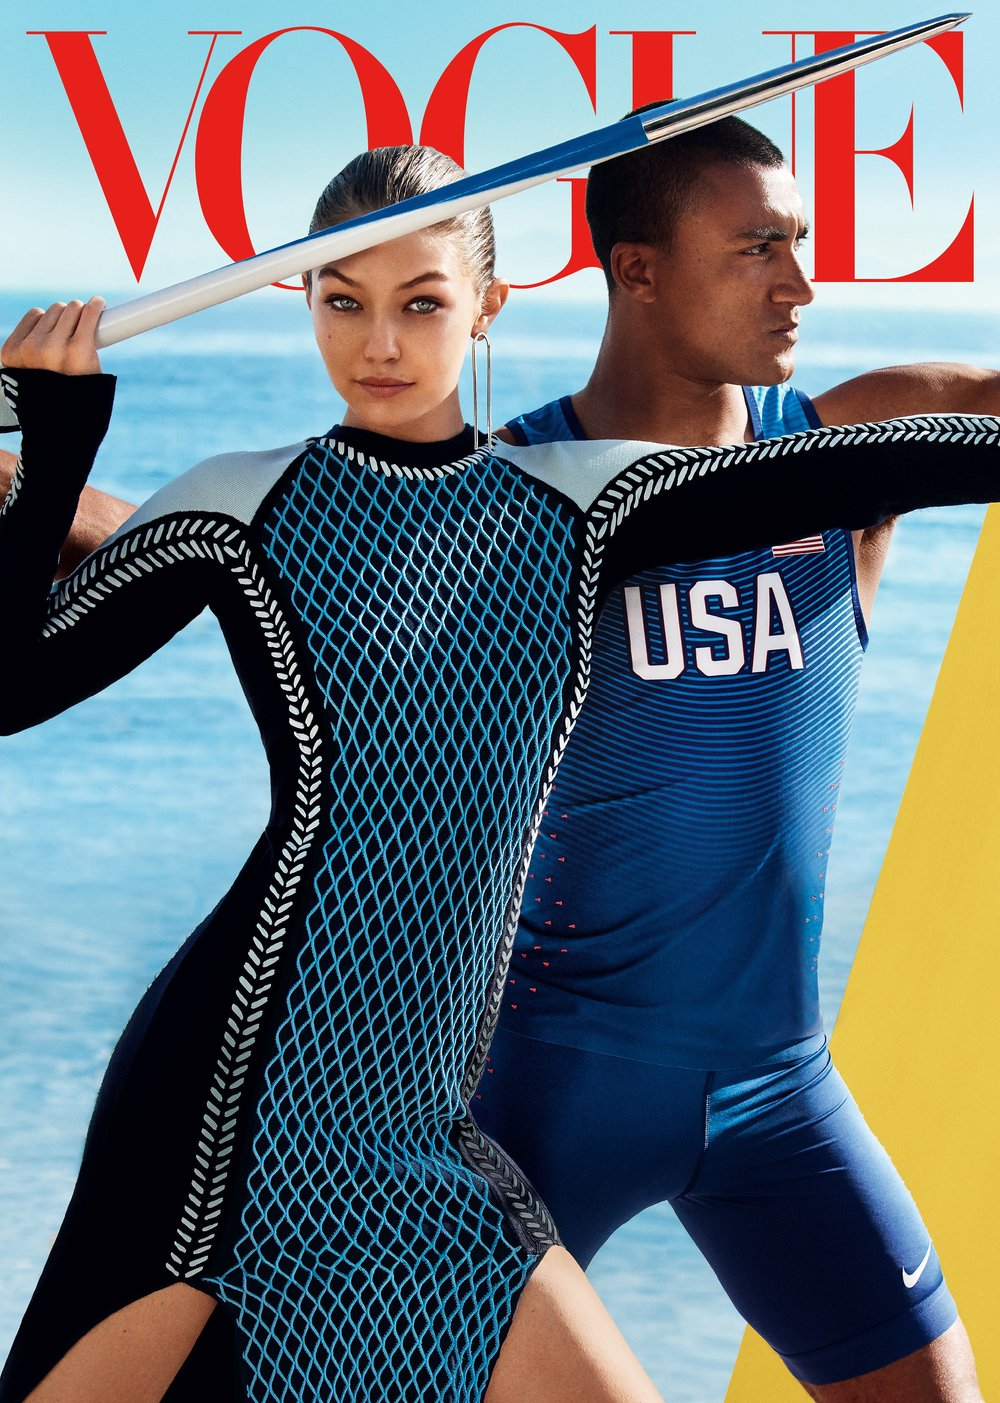 gigi-hadid-ashton-eaton-august-2016-vogue-cover.jpg